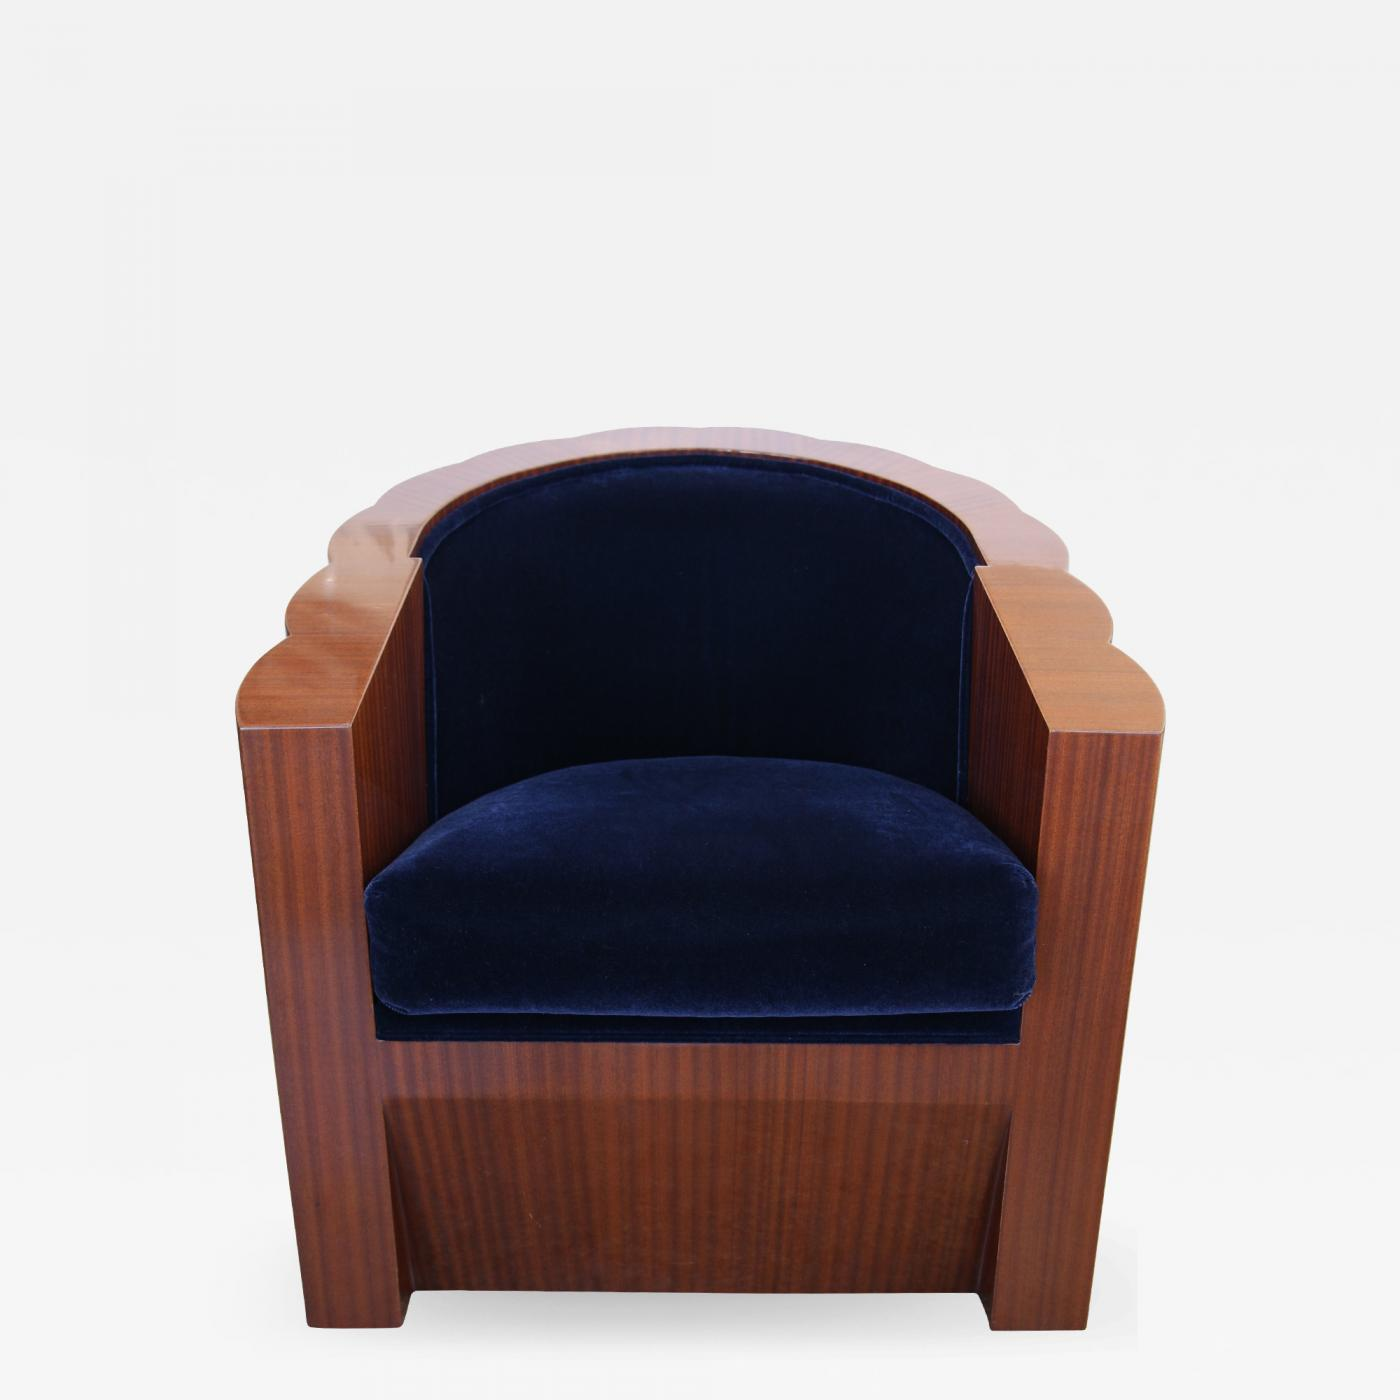 art deco style club chairs steel chair properties in mahogany wood and blue mohair listings furniture seating